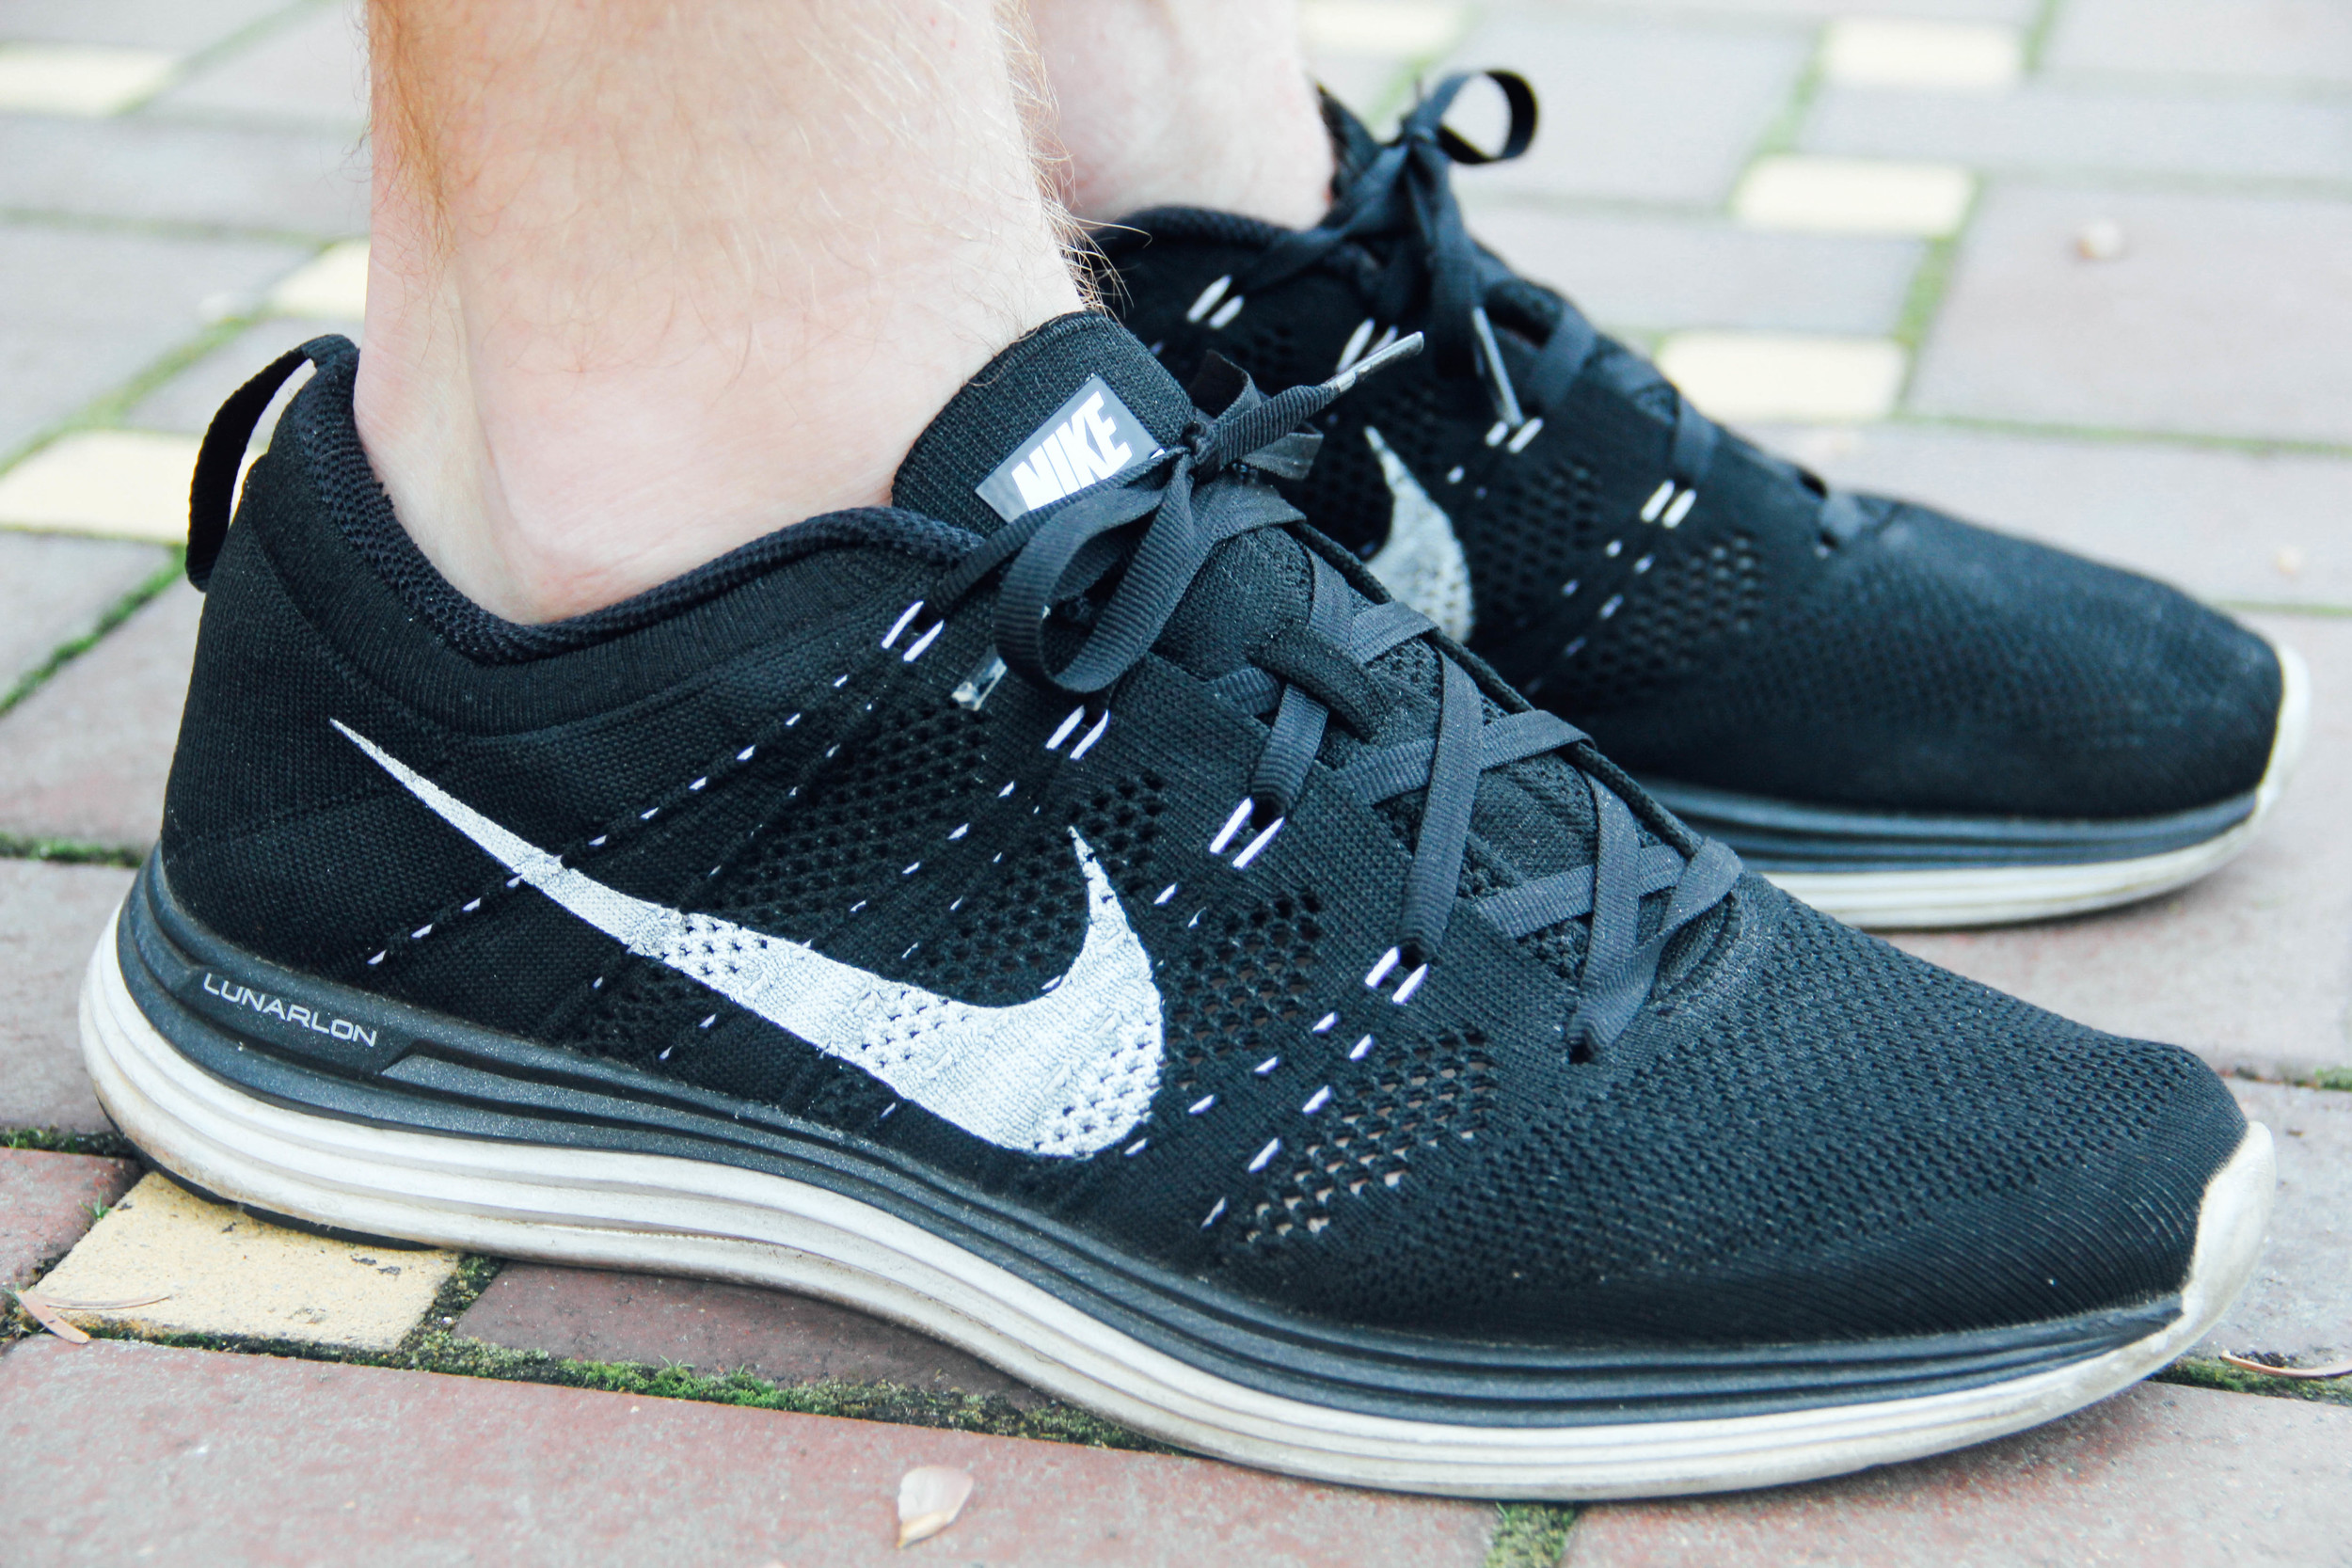 The Nike Flyknit Lunar 1 in Black/White (Flywire in contrast white)